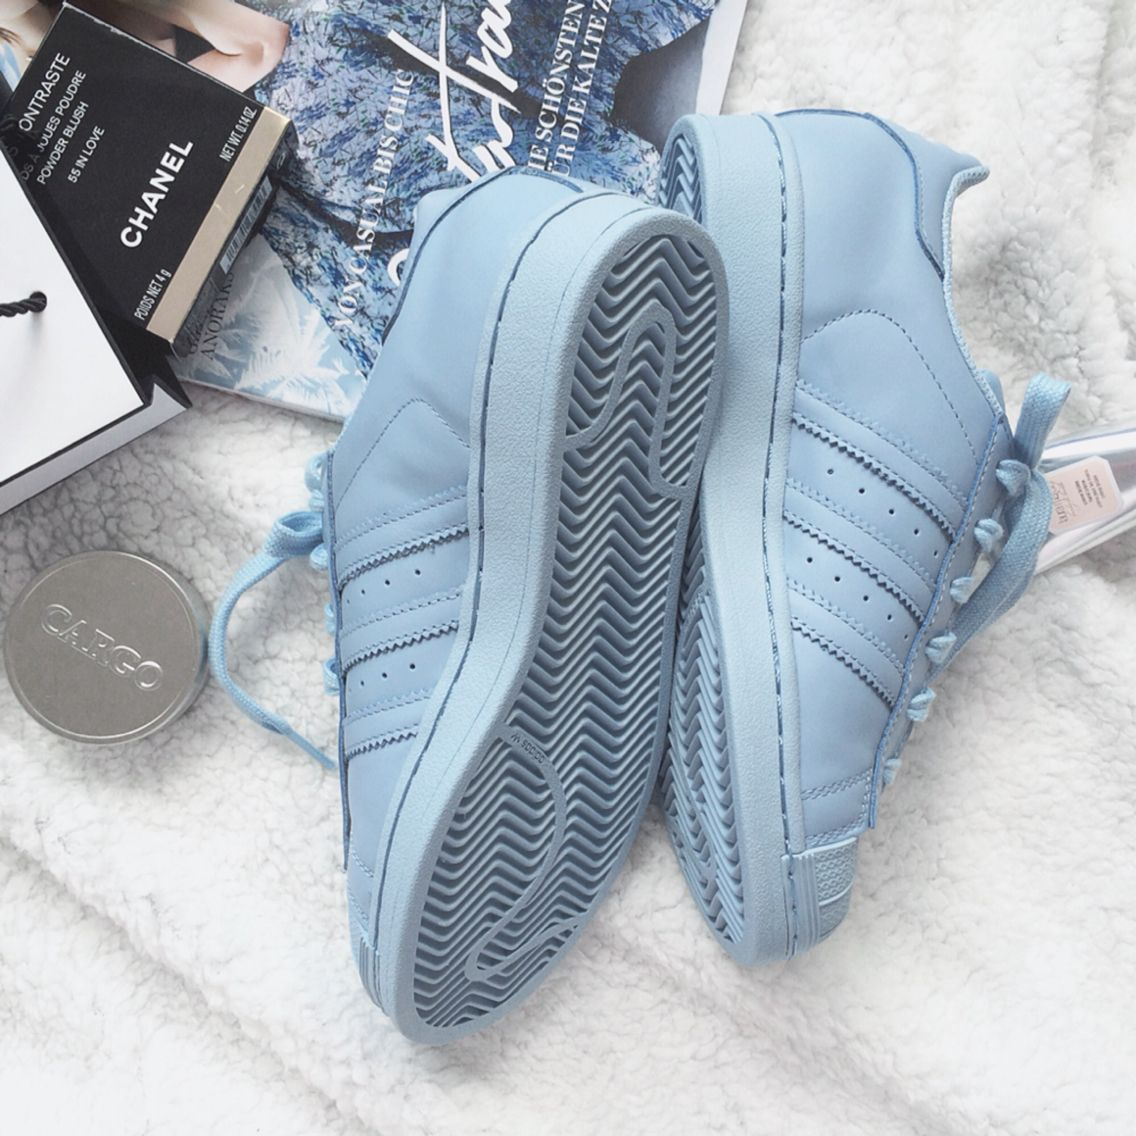 Adidas supercolor | clear sky | Shoes, Adidas shoes, Shoes